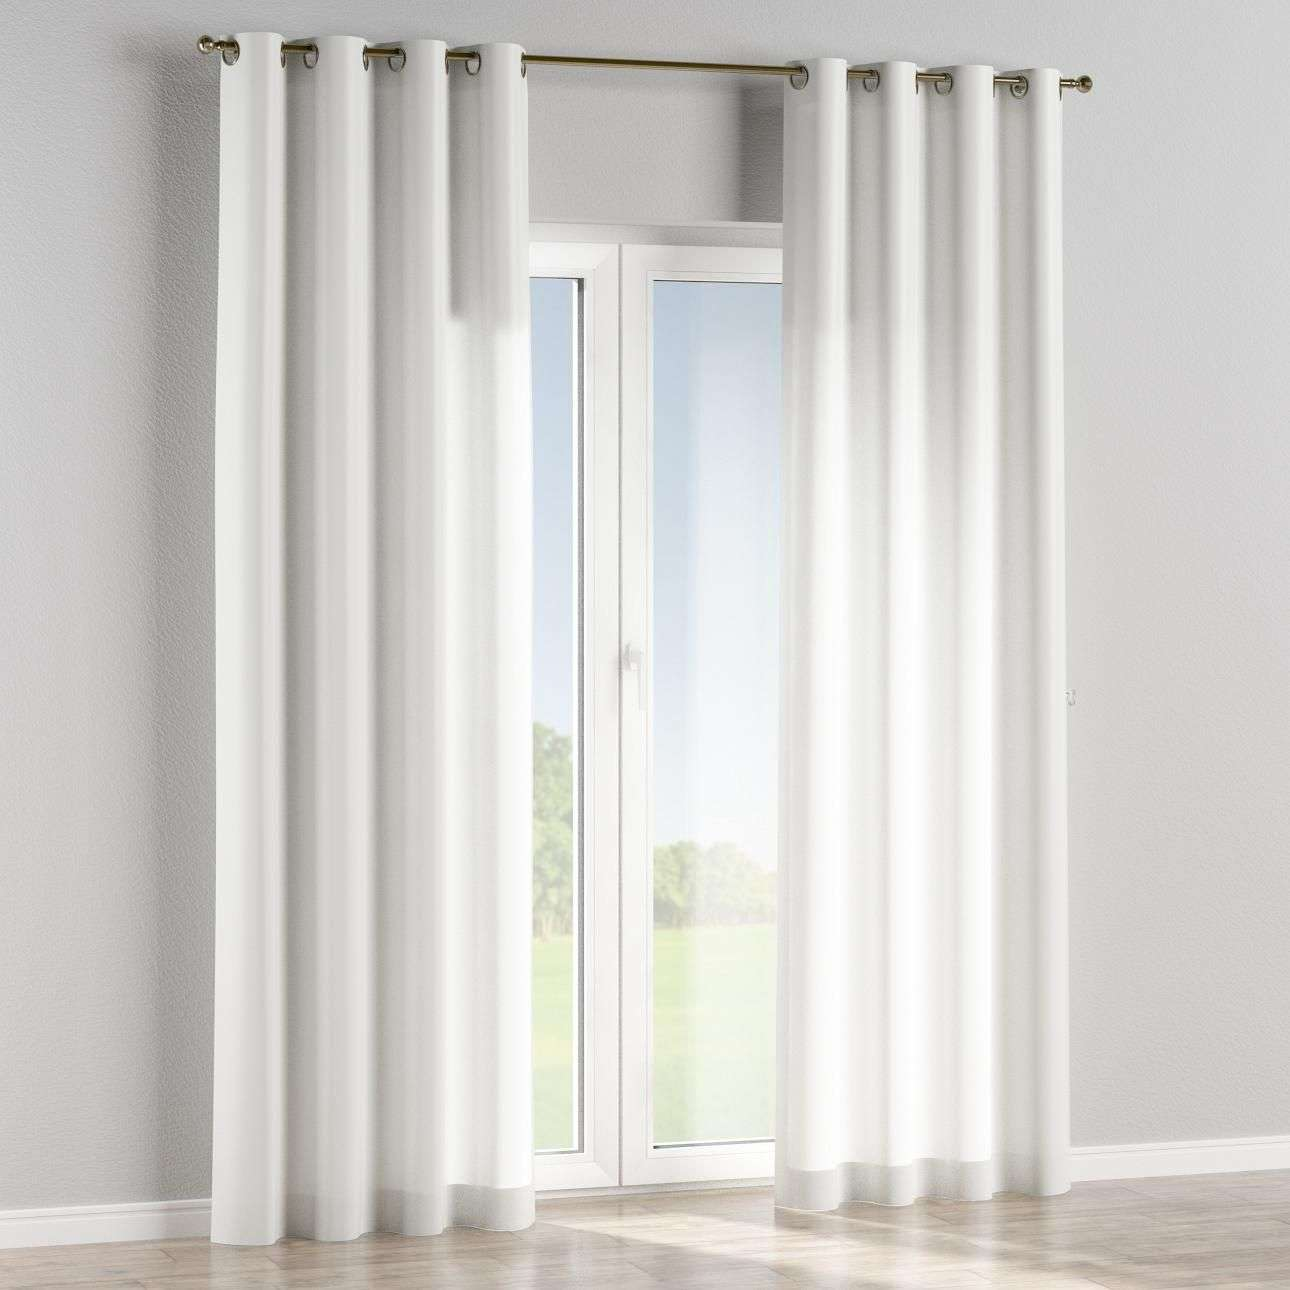 Eyelet lined curtains in collection Ashley, fabric: 137-73